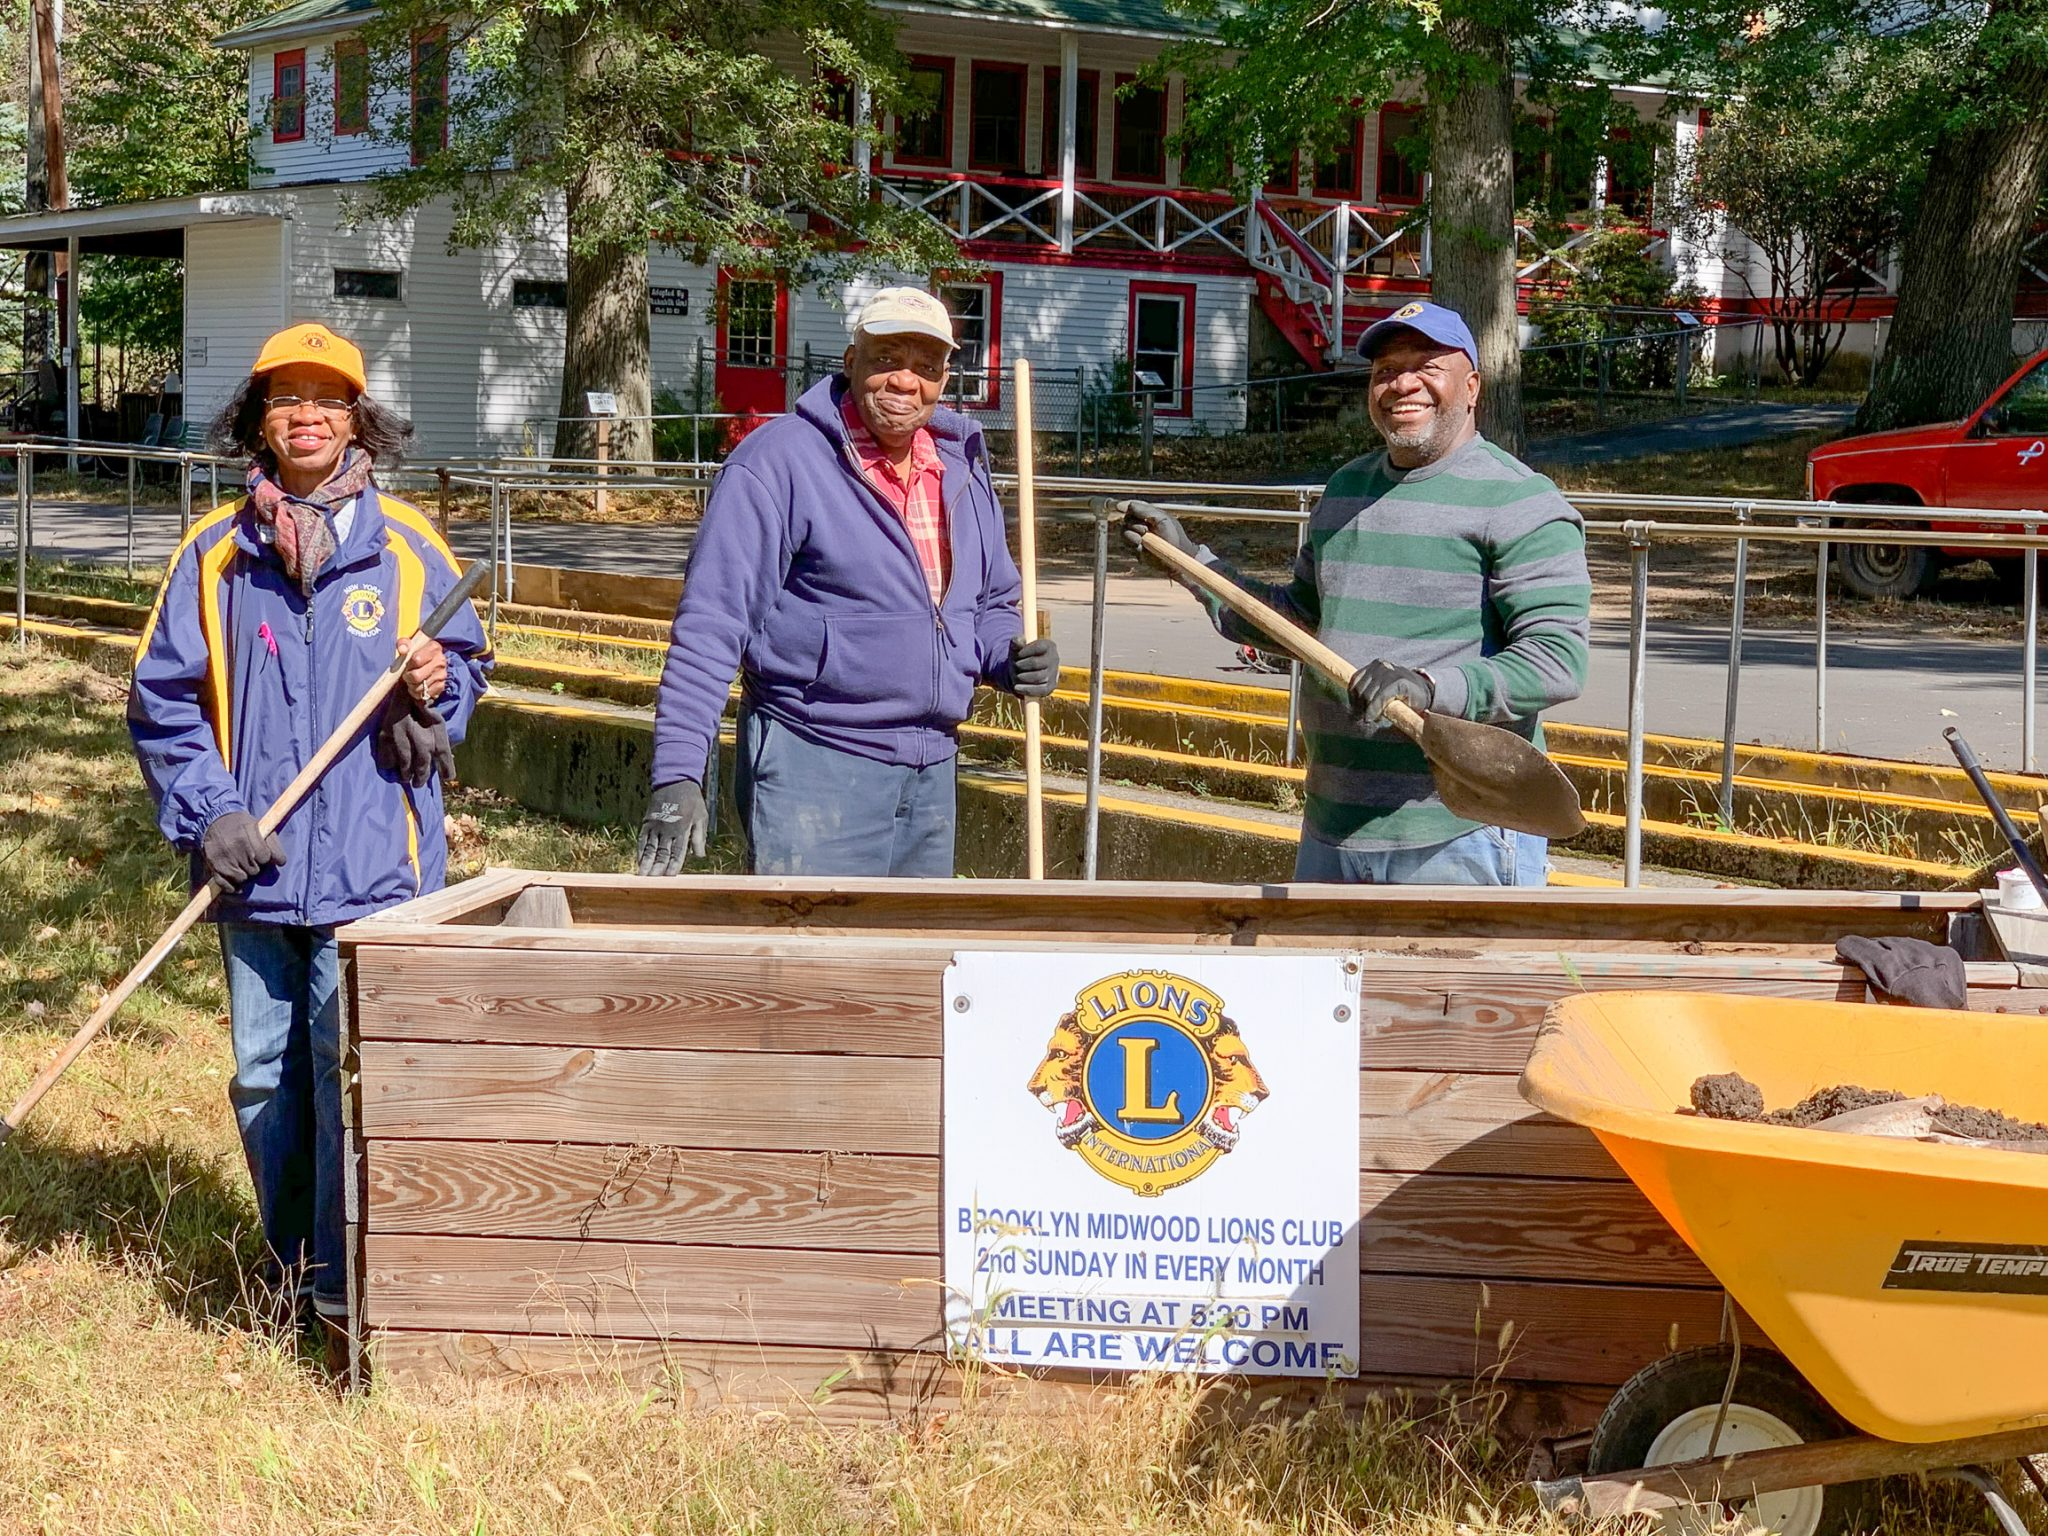 Three members of the Brooklyn Midwood Lions Club stand and smile to the camera while holding shovels.